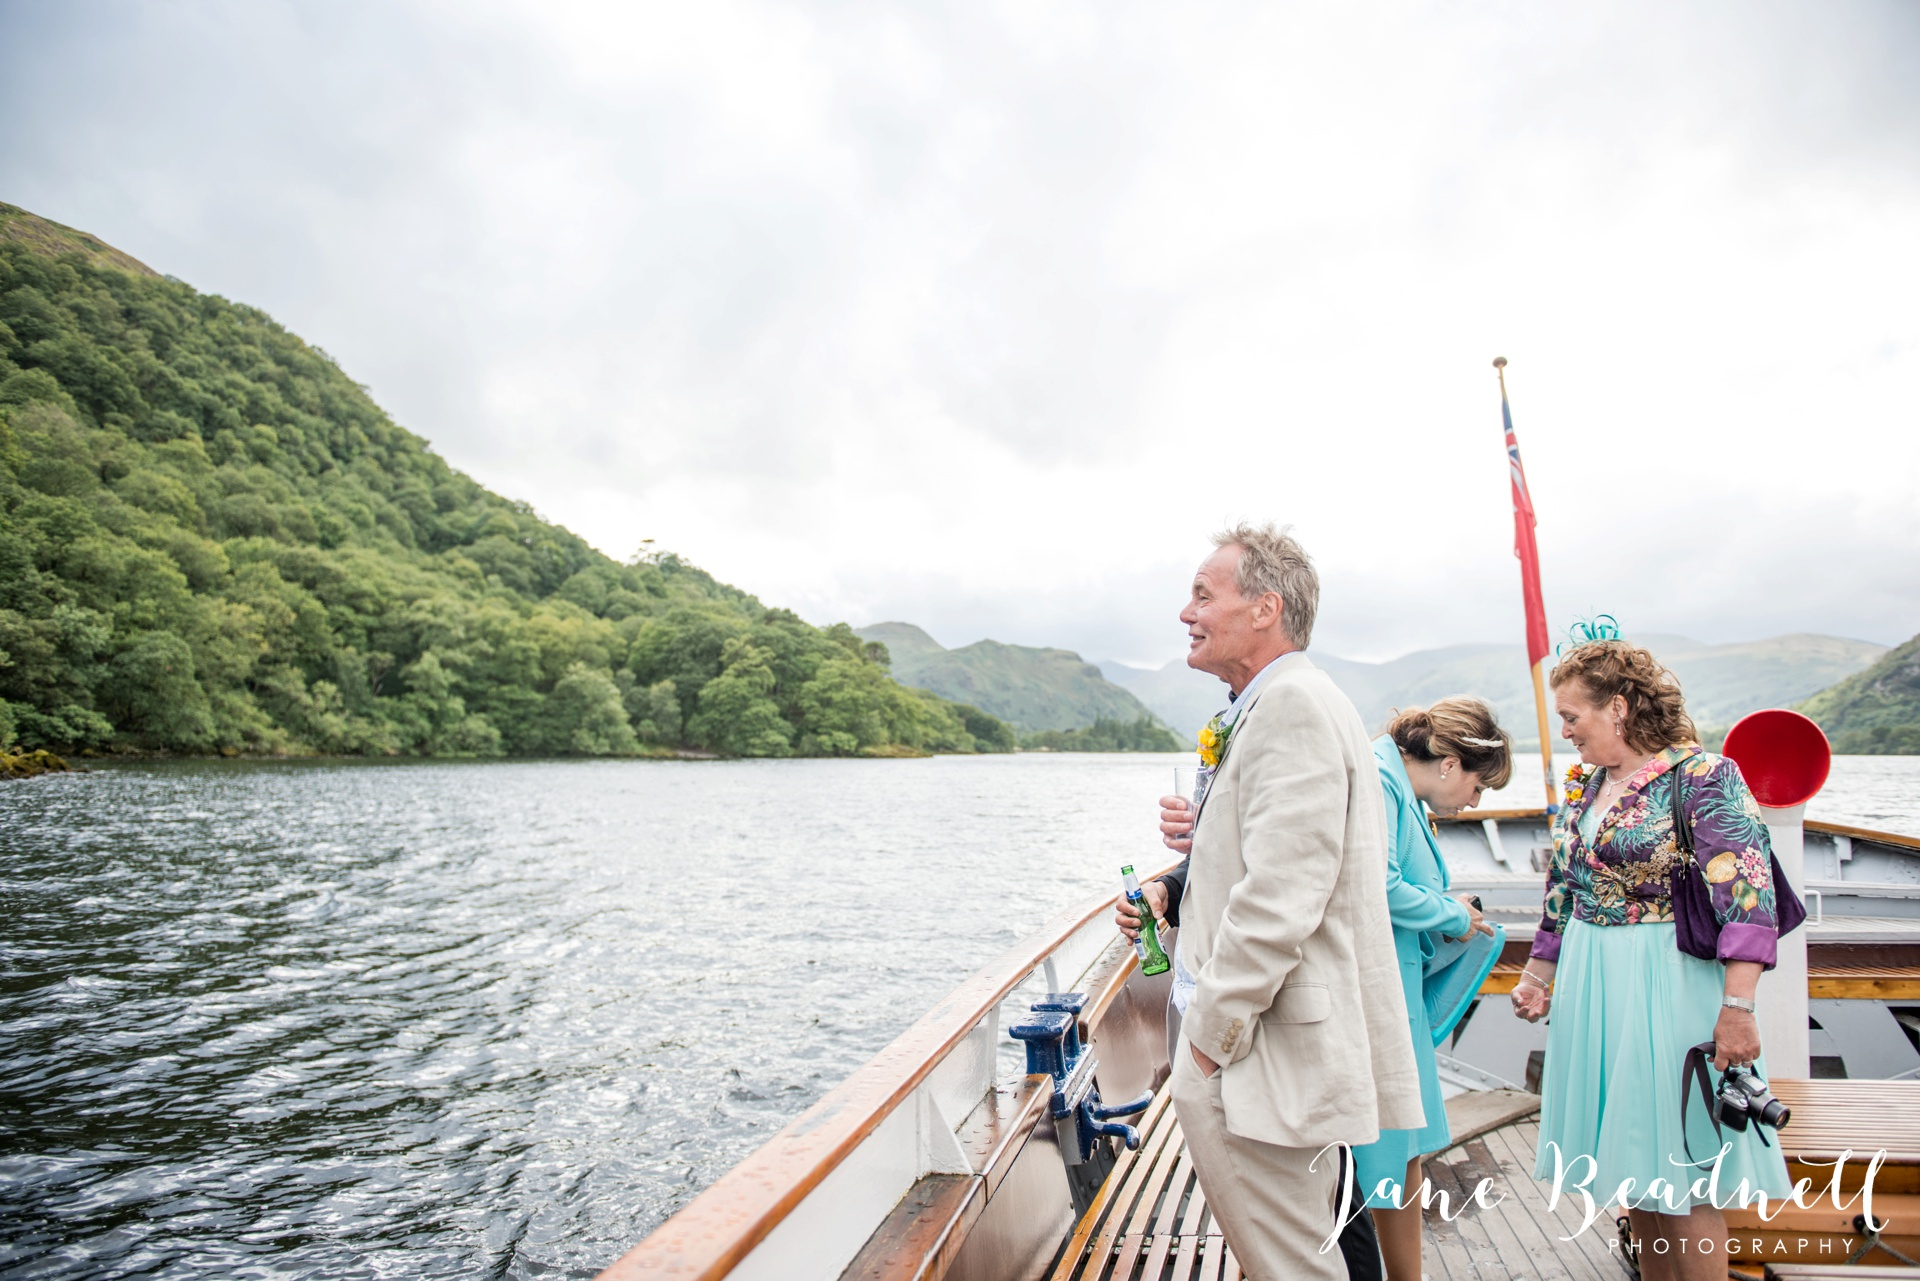 Jane Beadnell fine art wedding photographer Lake Ullswater Lake District_0018